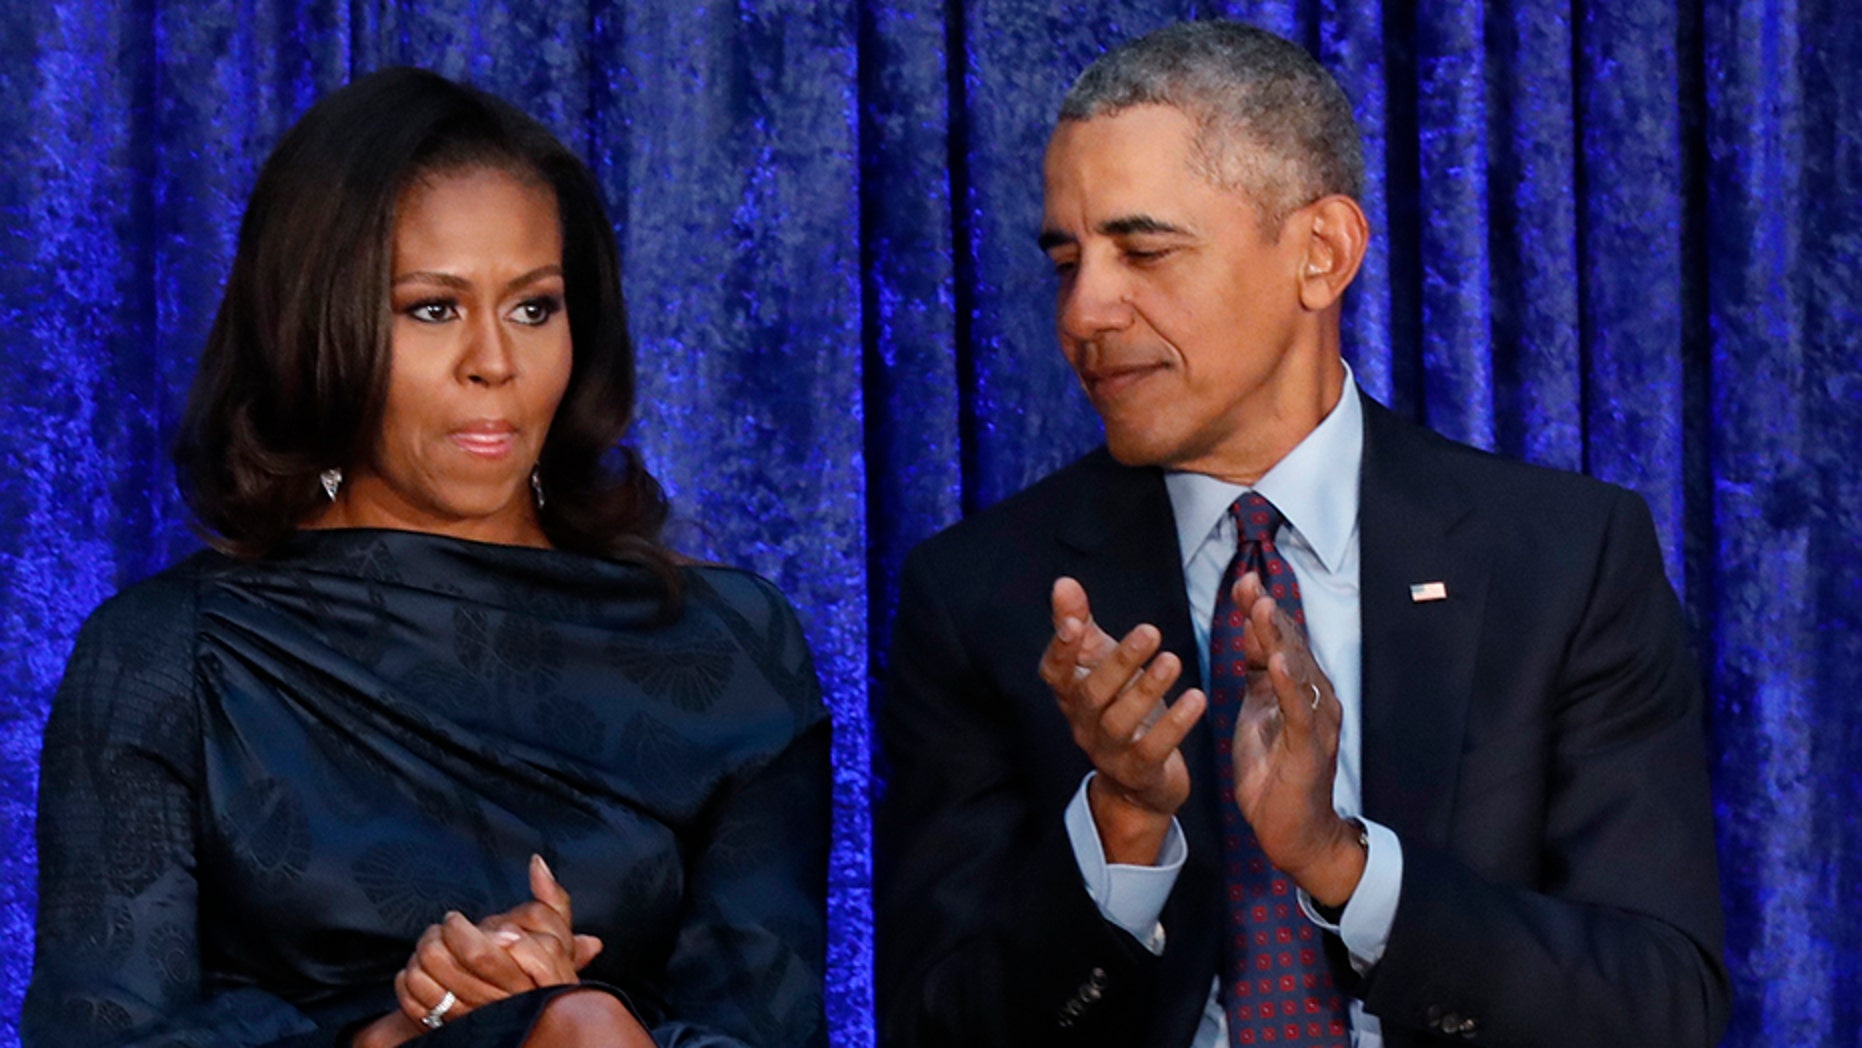 """President Obama slammed the press for being """"totally disrespectful"""" after a story in 2013 about a high school football coach calling the first lady """"fat butt Michelle Obama."""""""